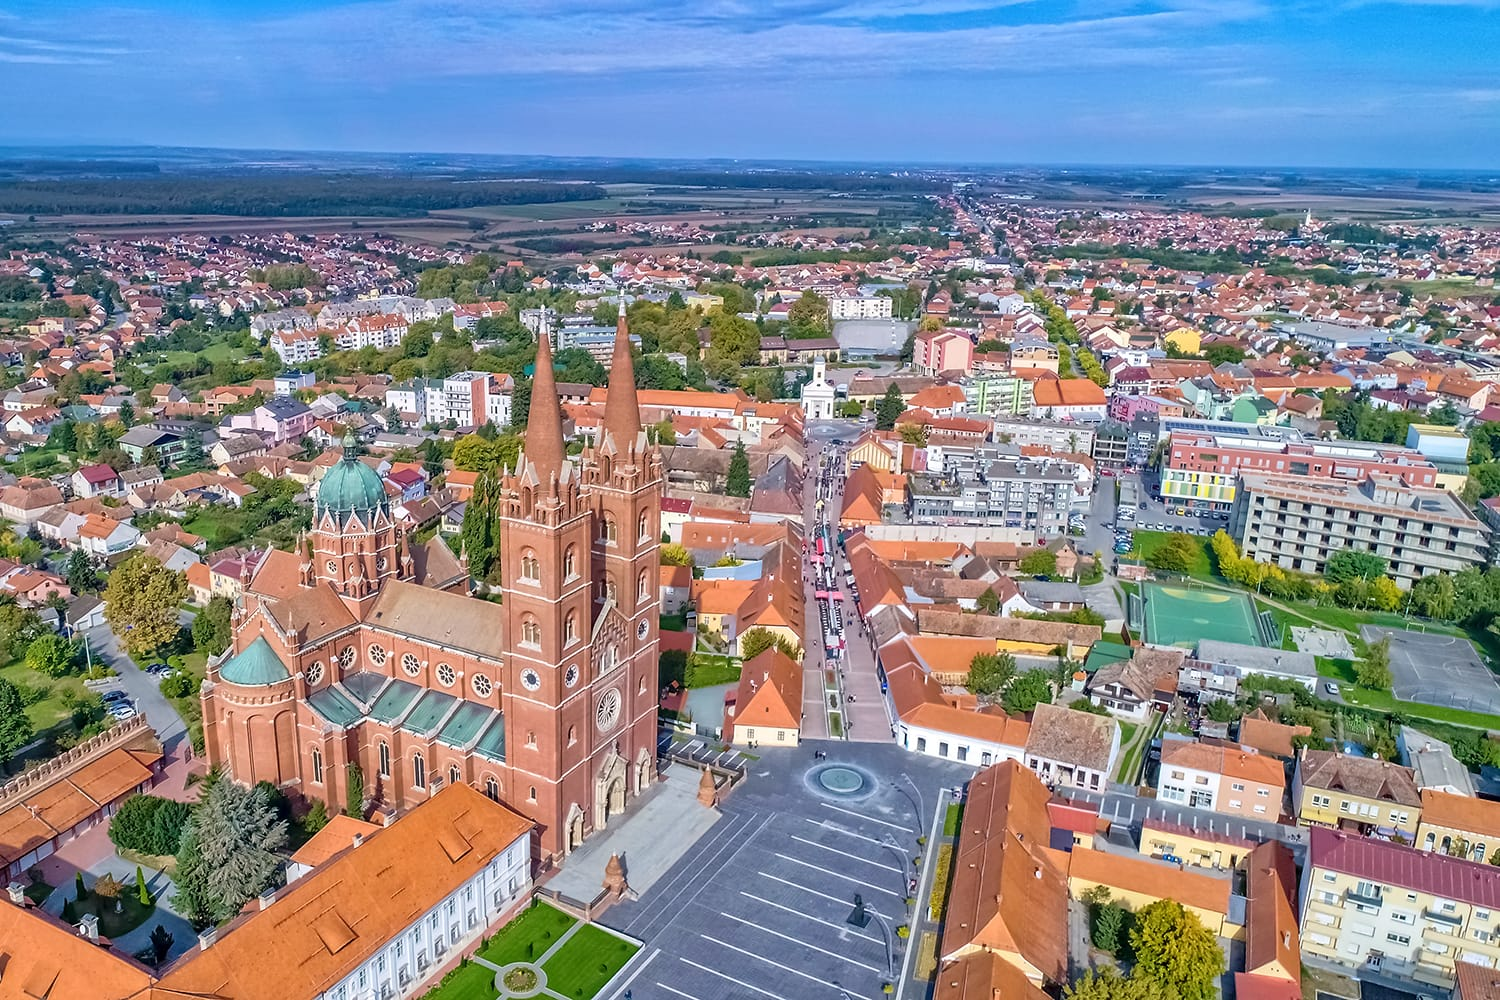 Aerial view of the St. Peter cathedral and the city center of the Djakovo, Croatia.